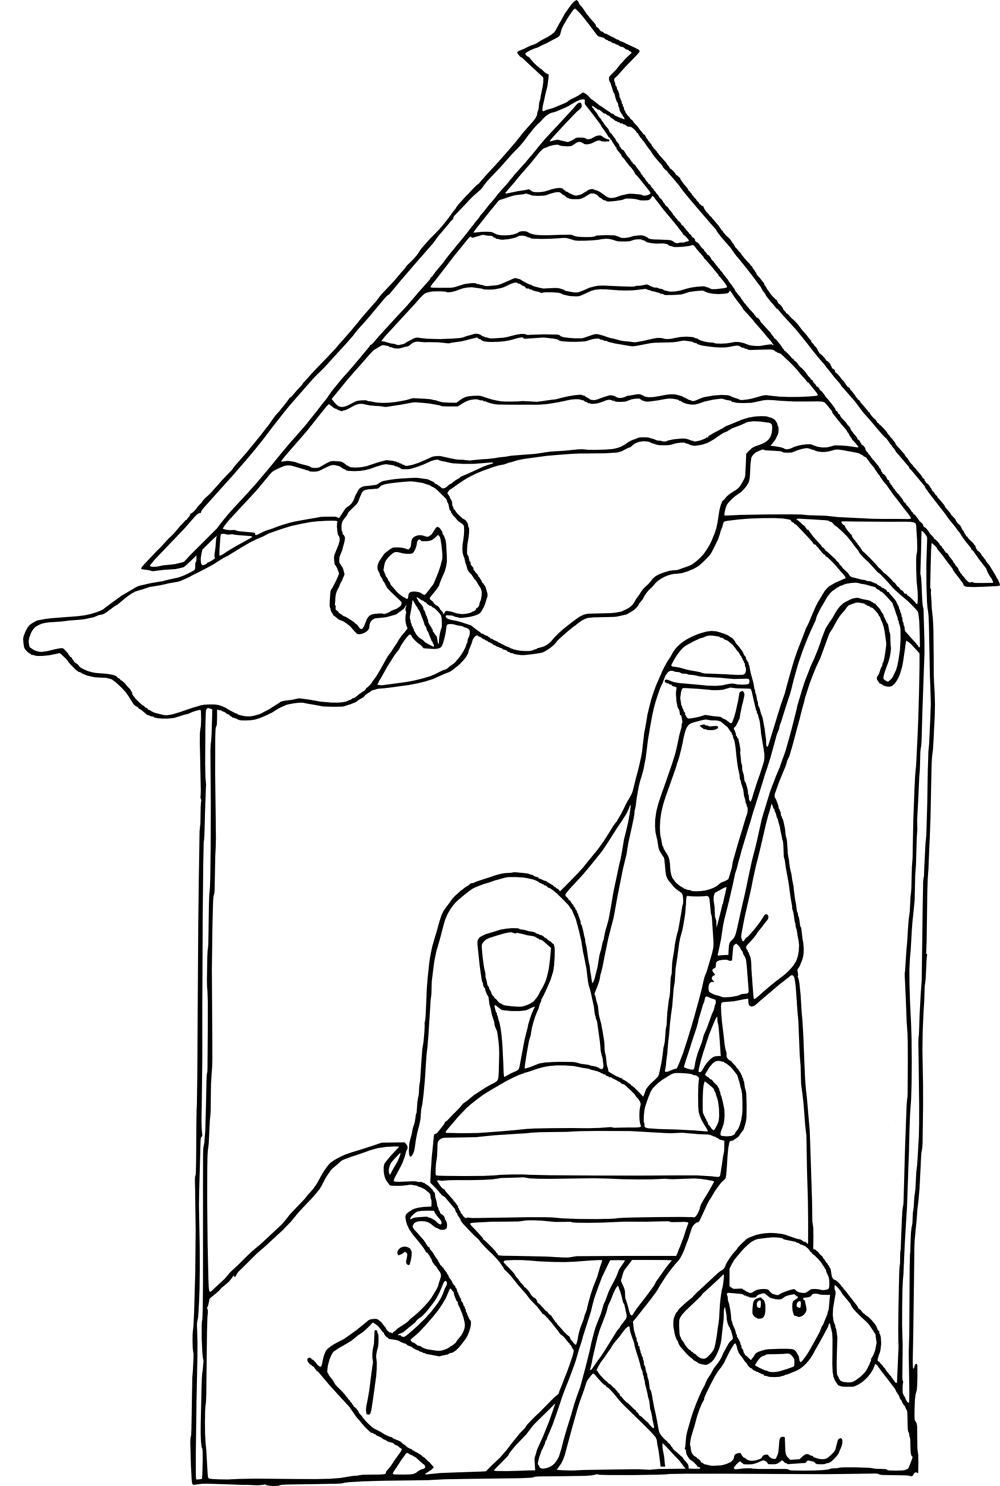 coloring picture of baby jesus 2011 11 13 free christian wallpapers of coloring jesus picture baby